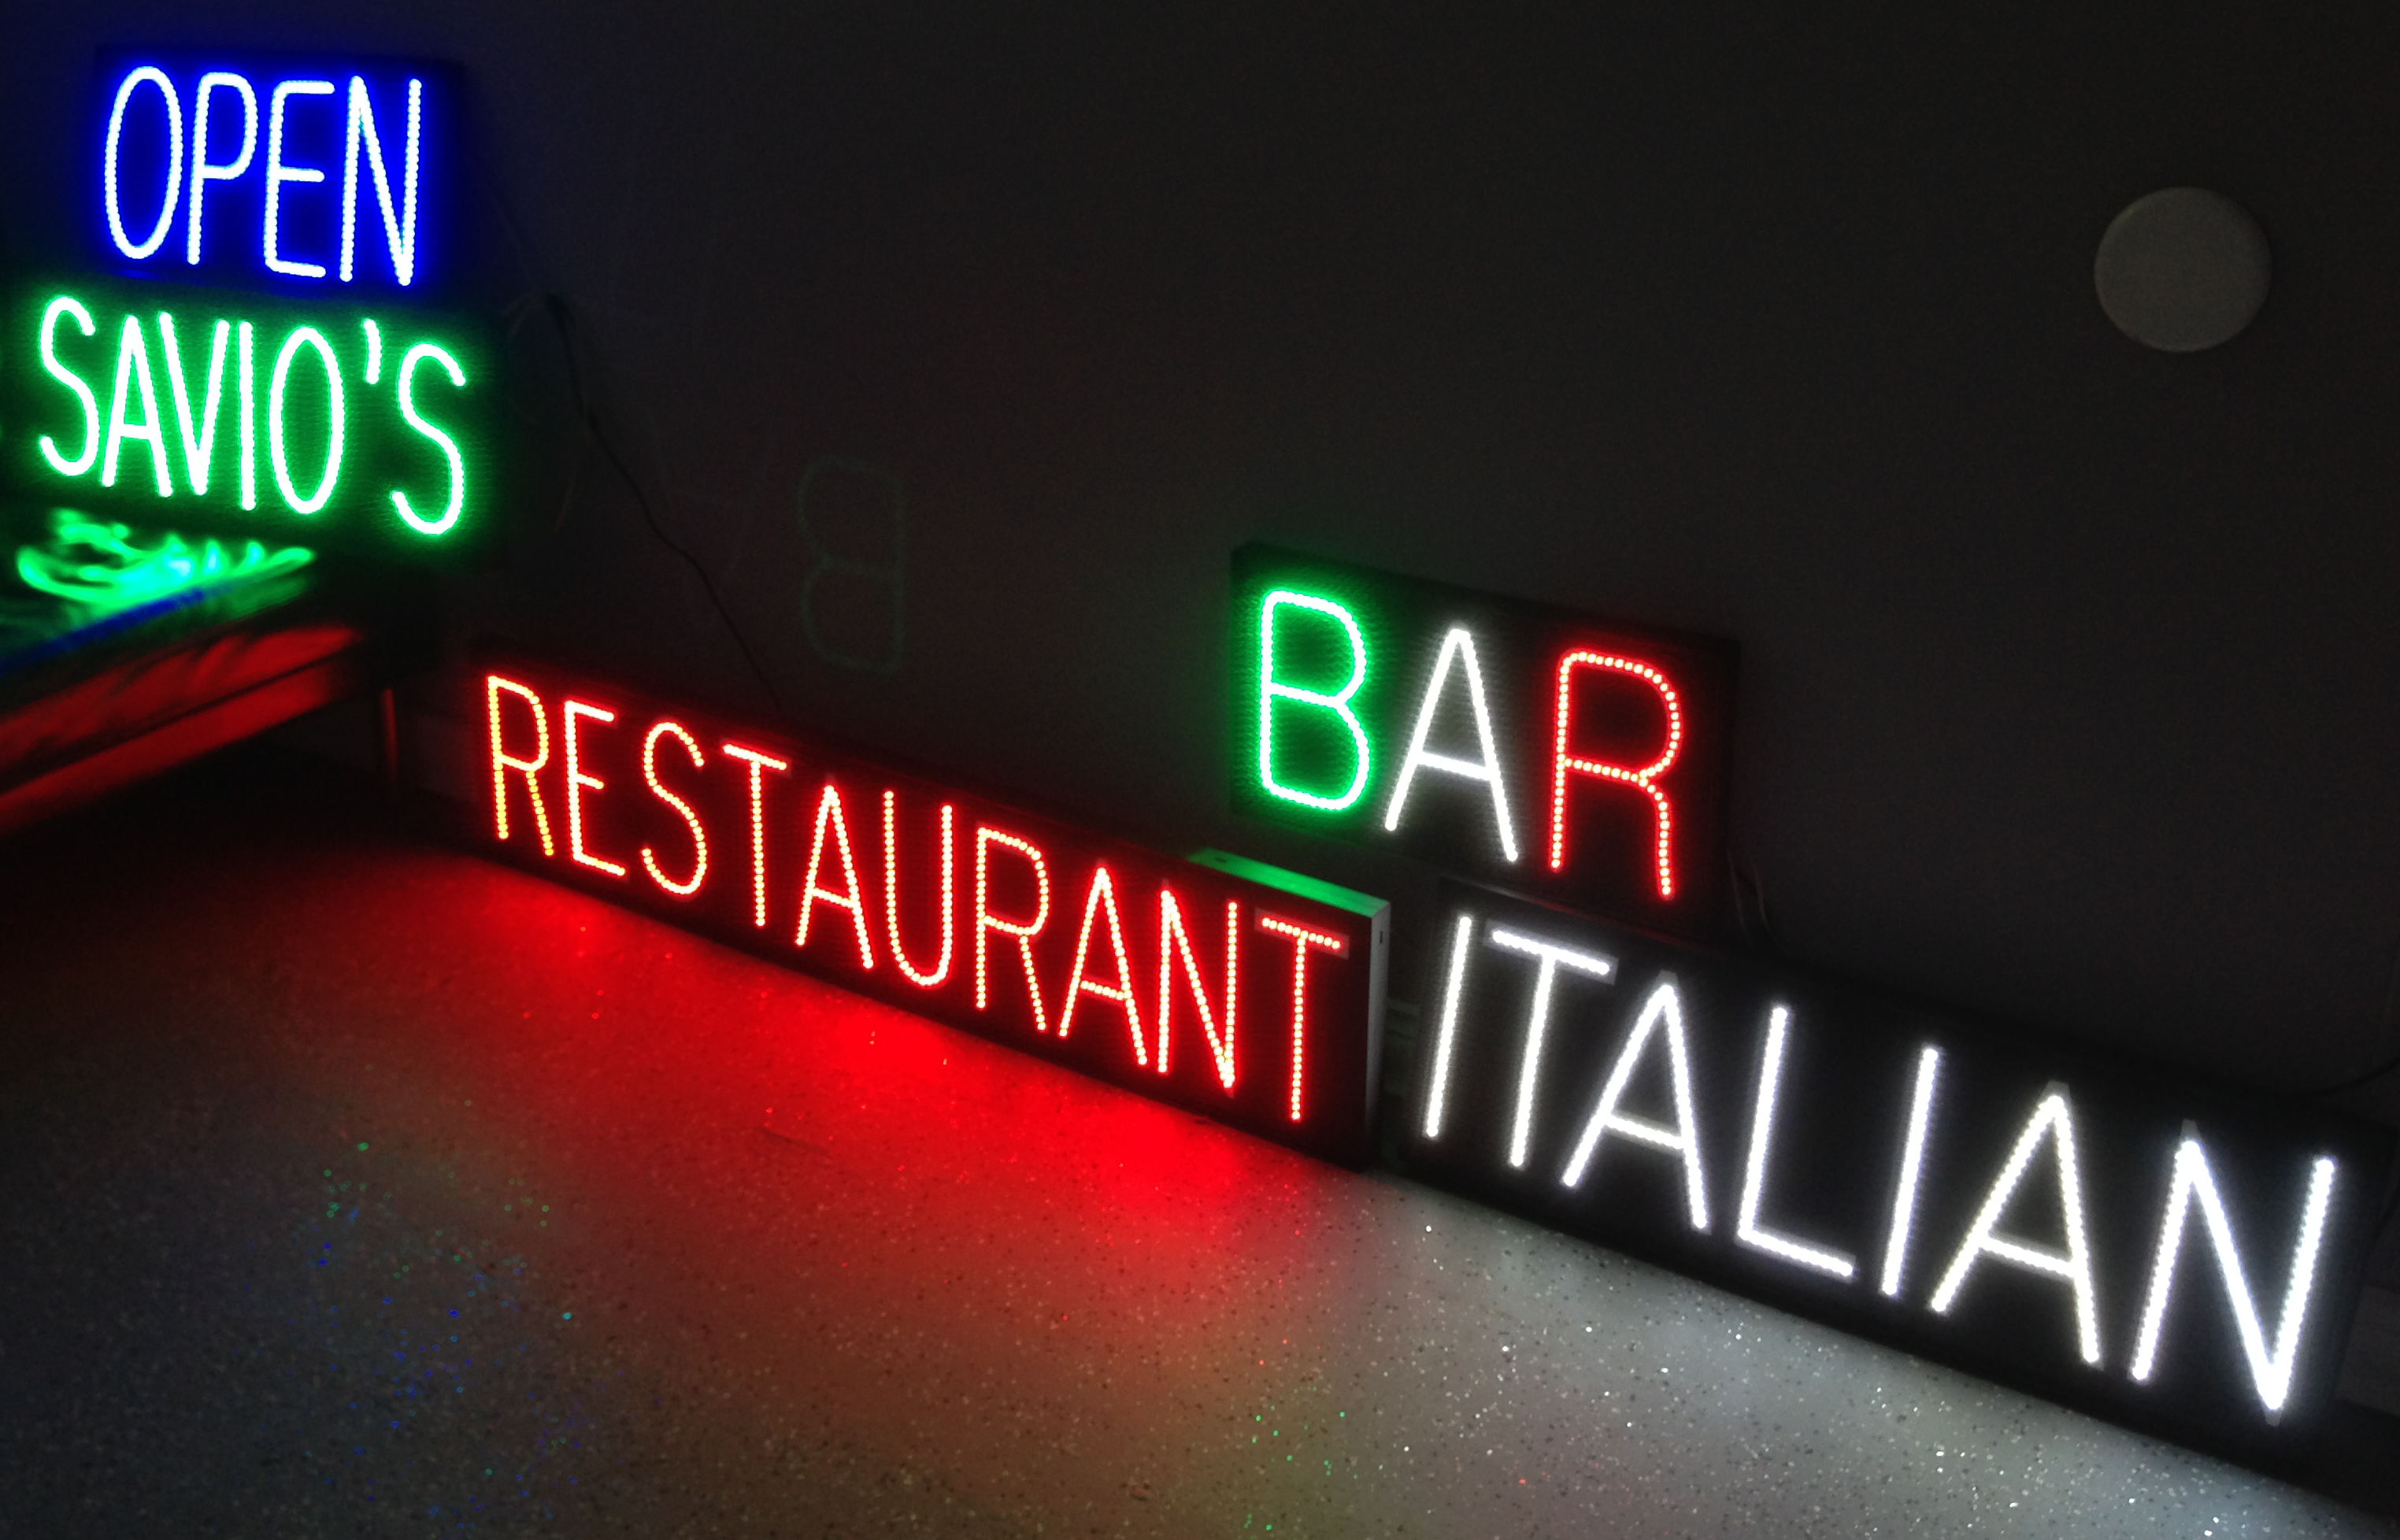 Custom LED signs for restaurant in Italian flag colors.